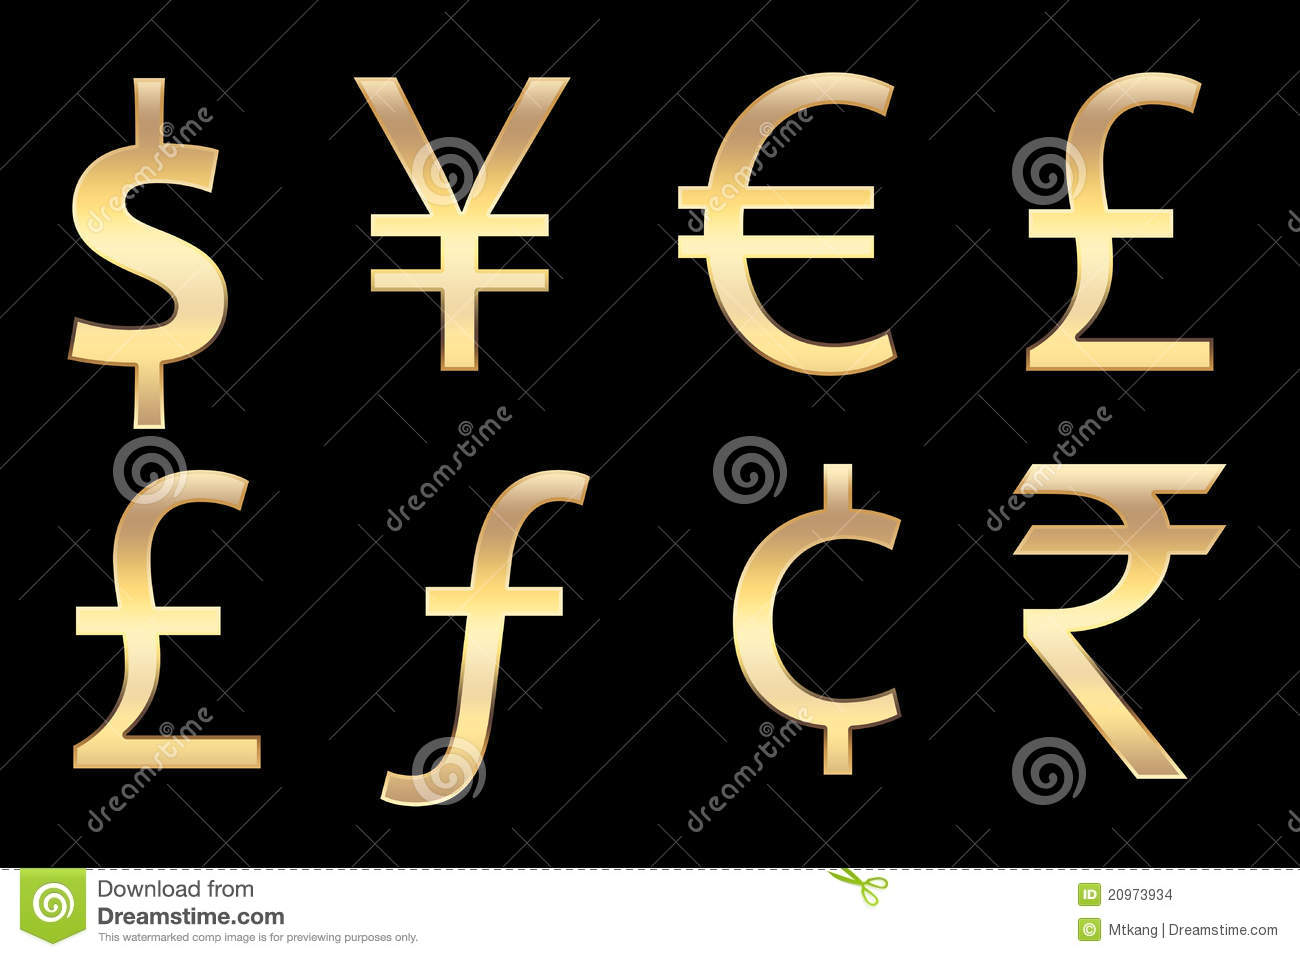 Gold symbol in forex